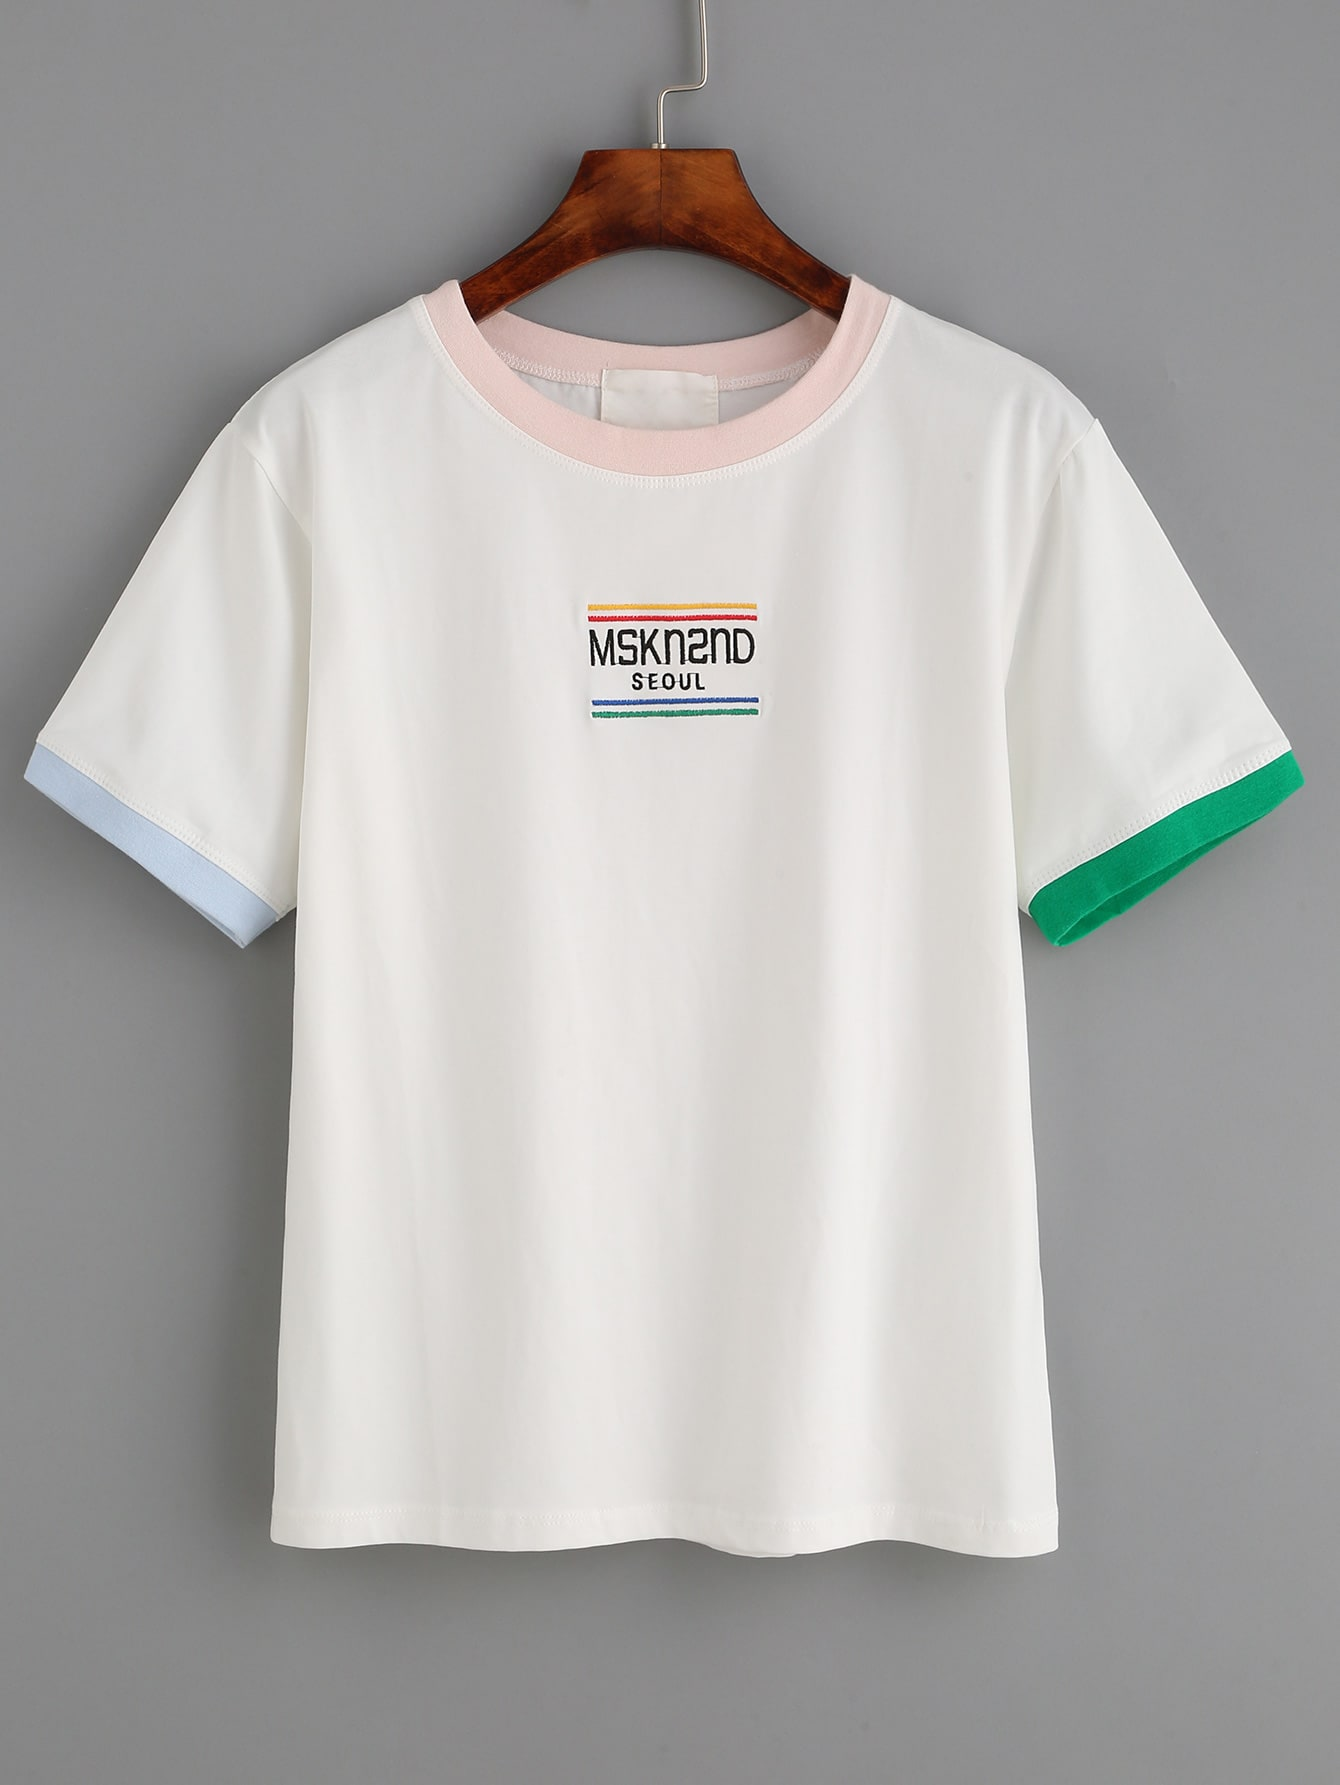 White Letter Embroidered Contrast Trim T-shirtWhite Letter Embroidered Contrast Trim T-shirt<br><br>color: White<br>size: one-size